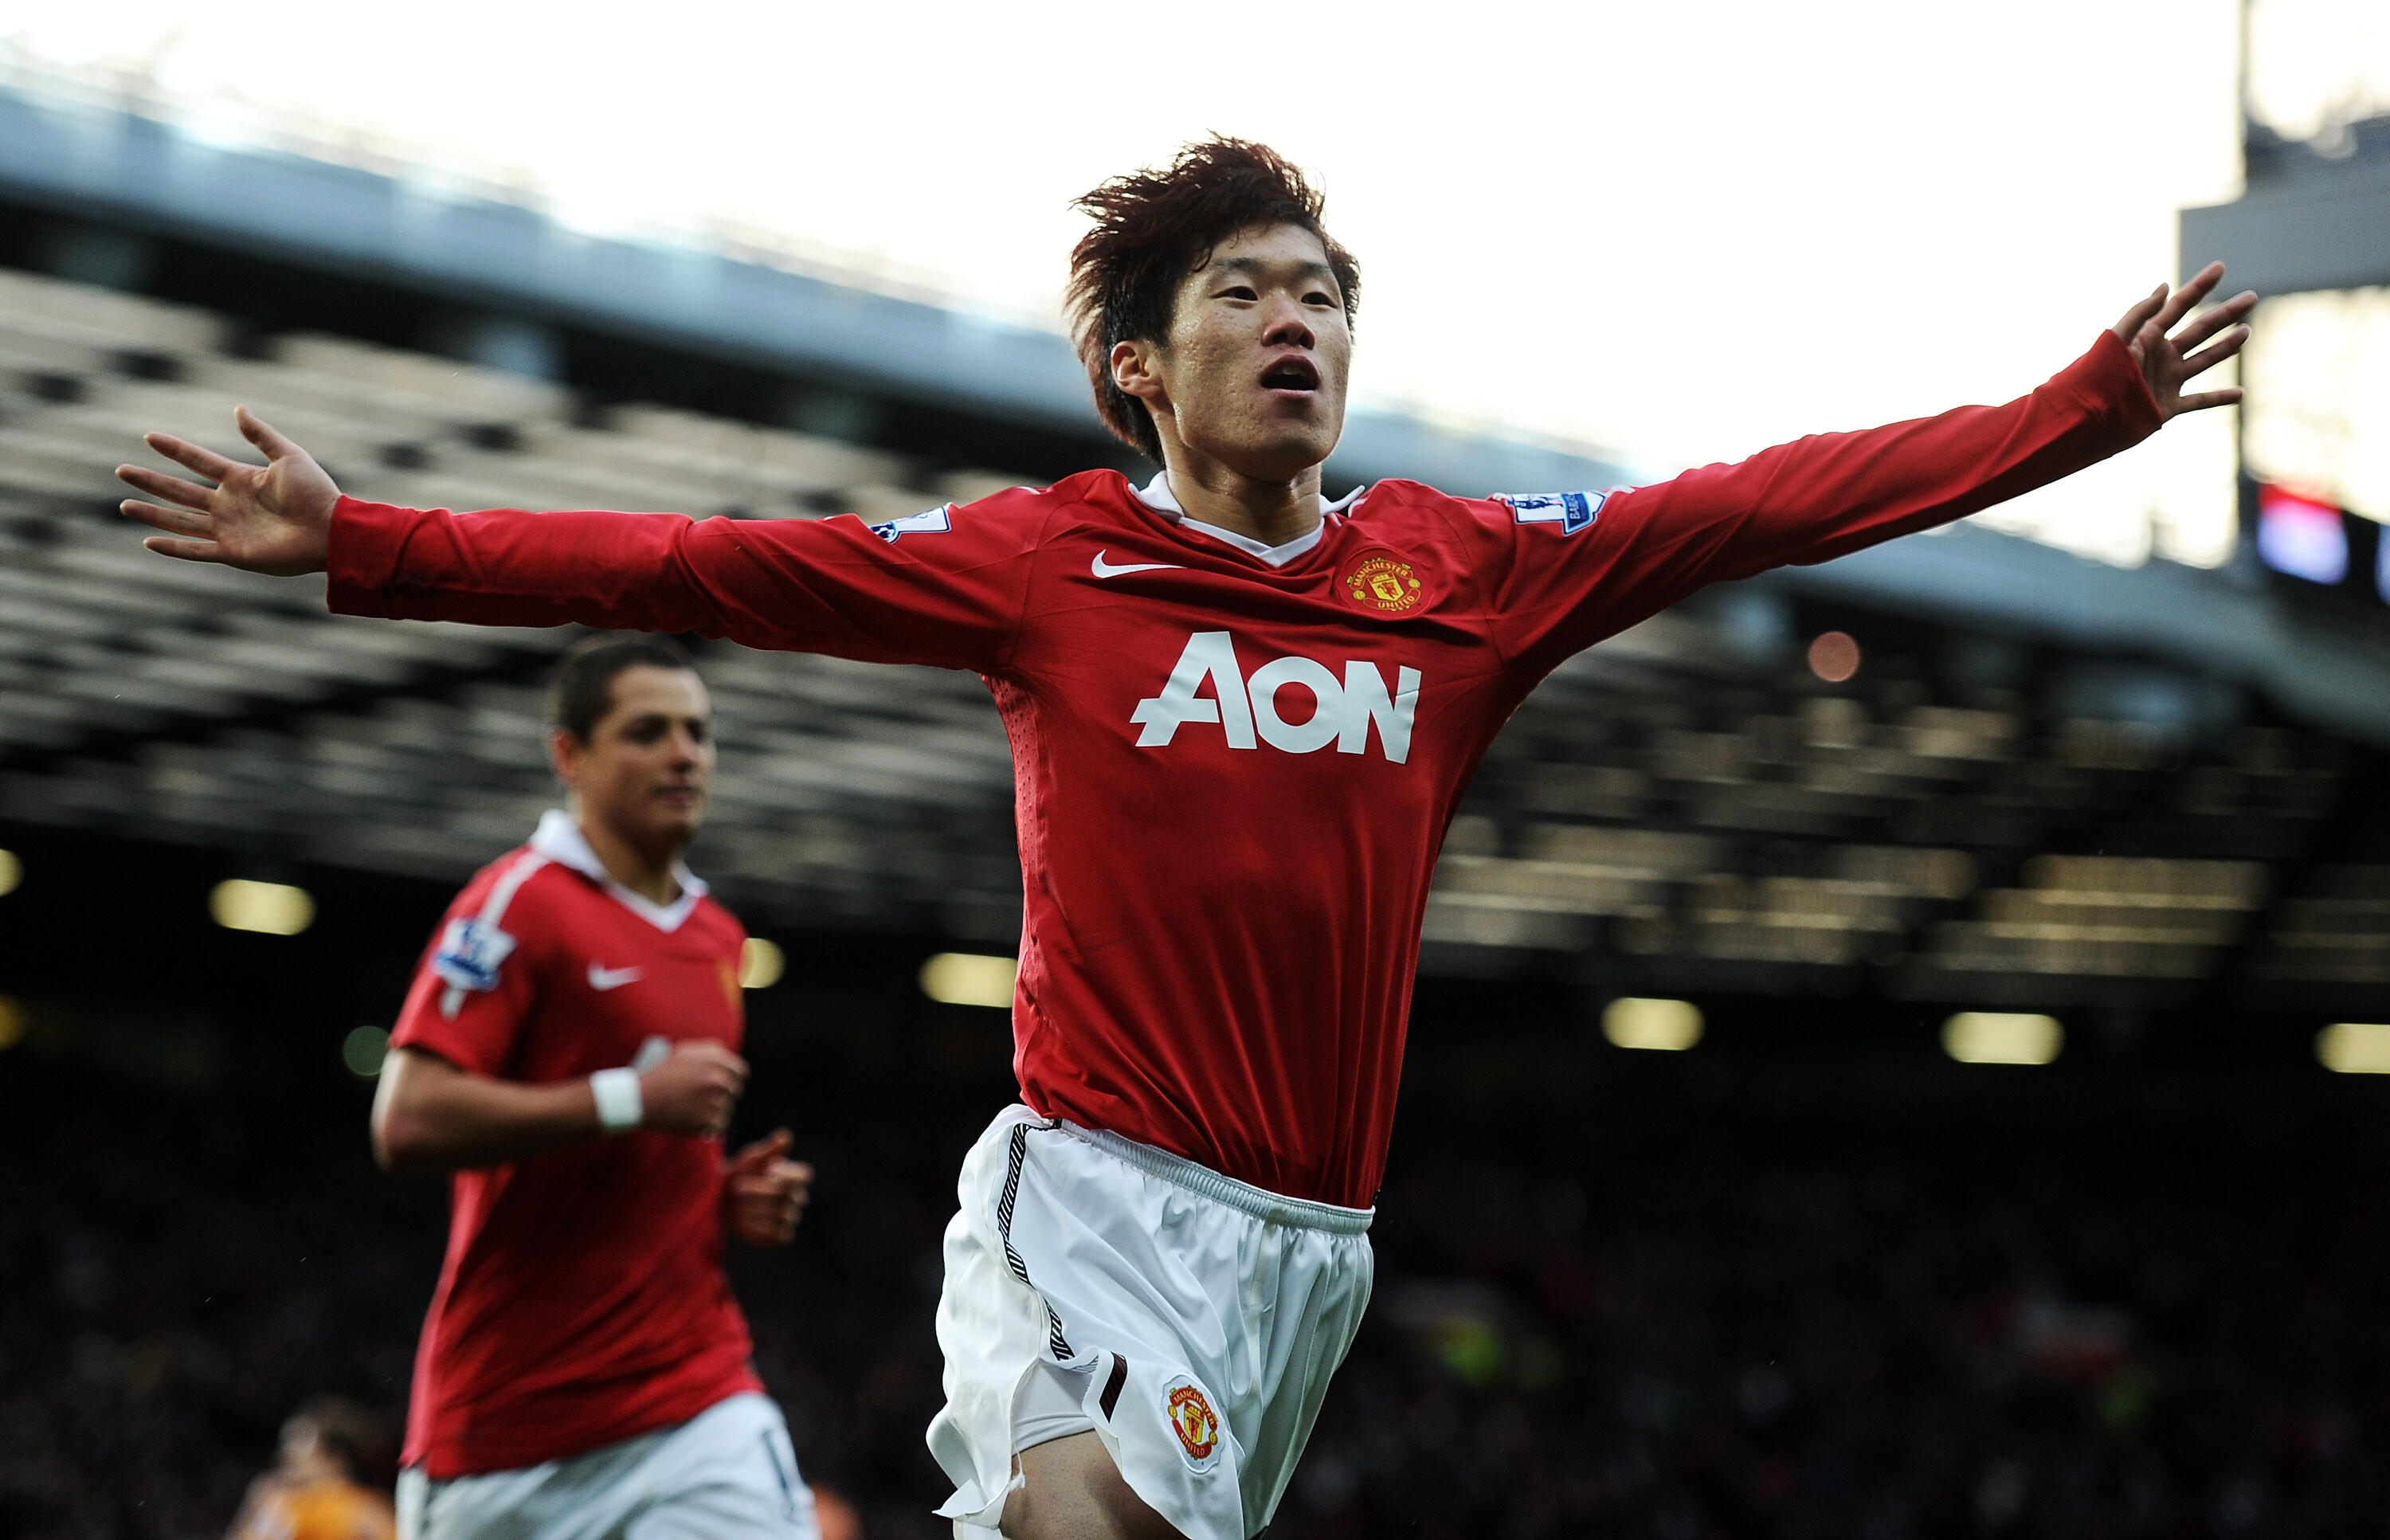 Park Ji-sung: Ex-Manchester United star urges fans to stop singing his chant which includes racial stereotype